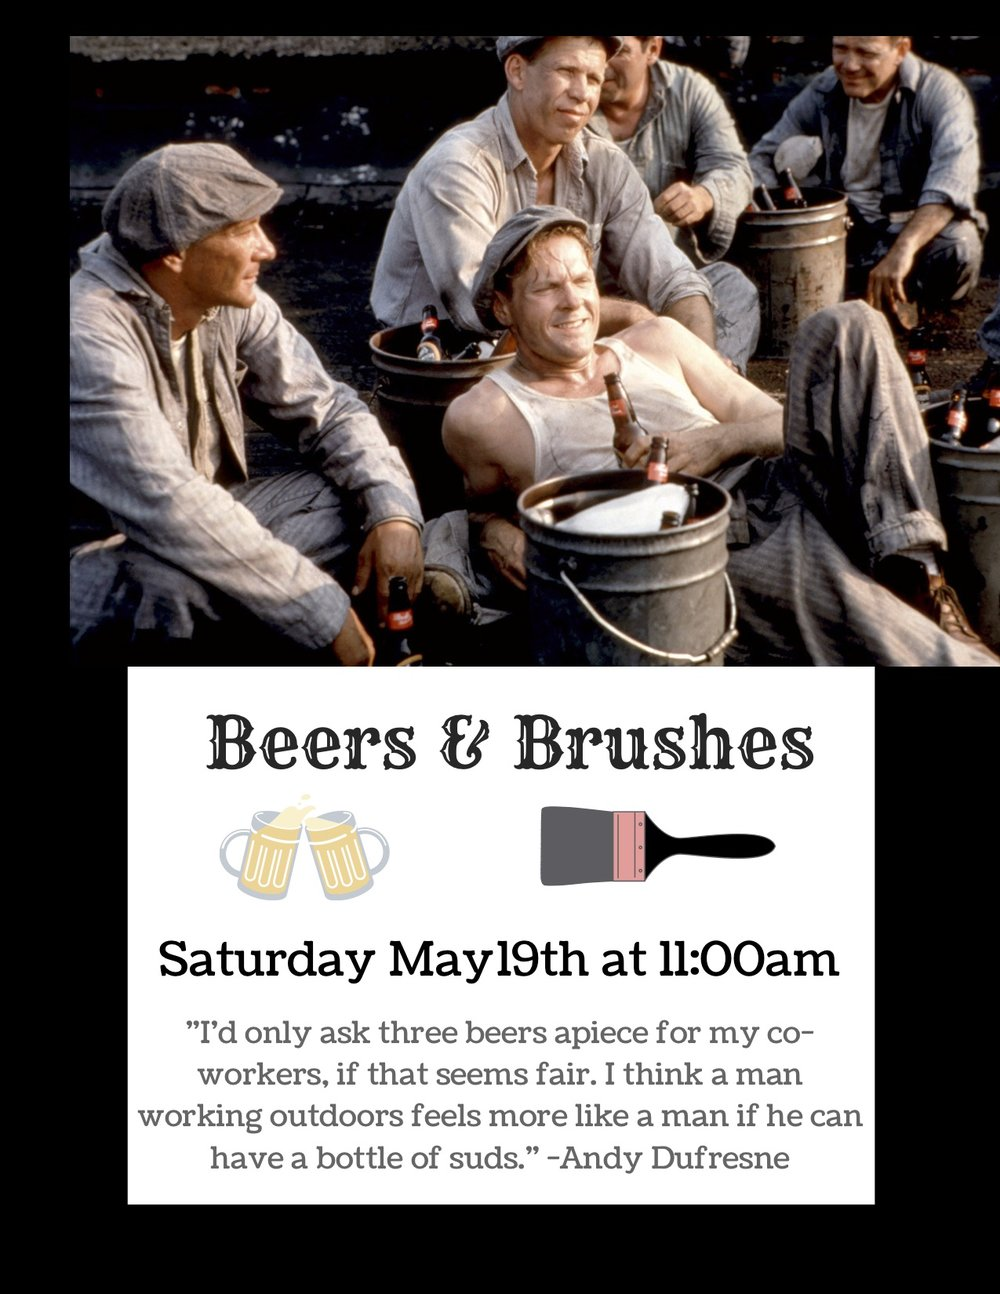 Beers & Brushes-2a.jpg